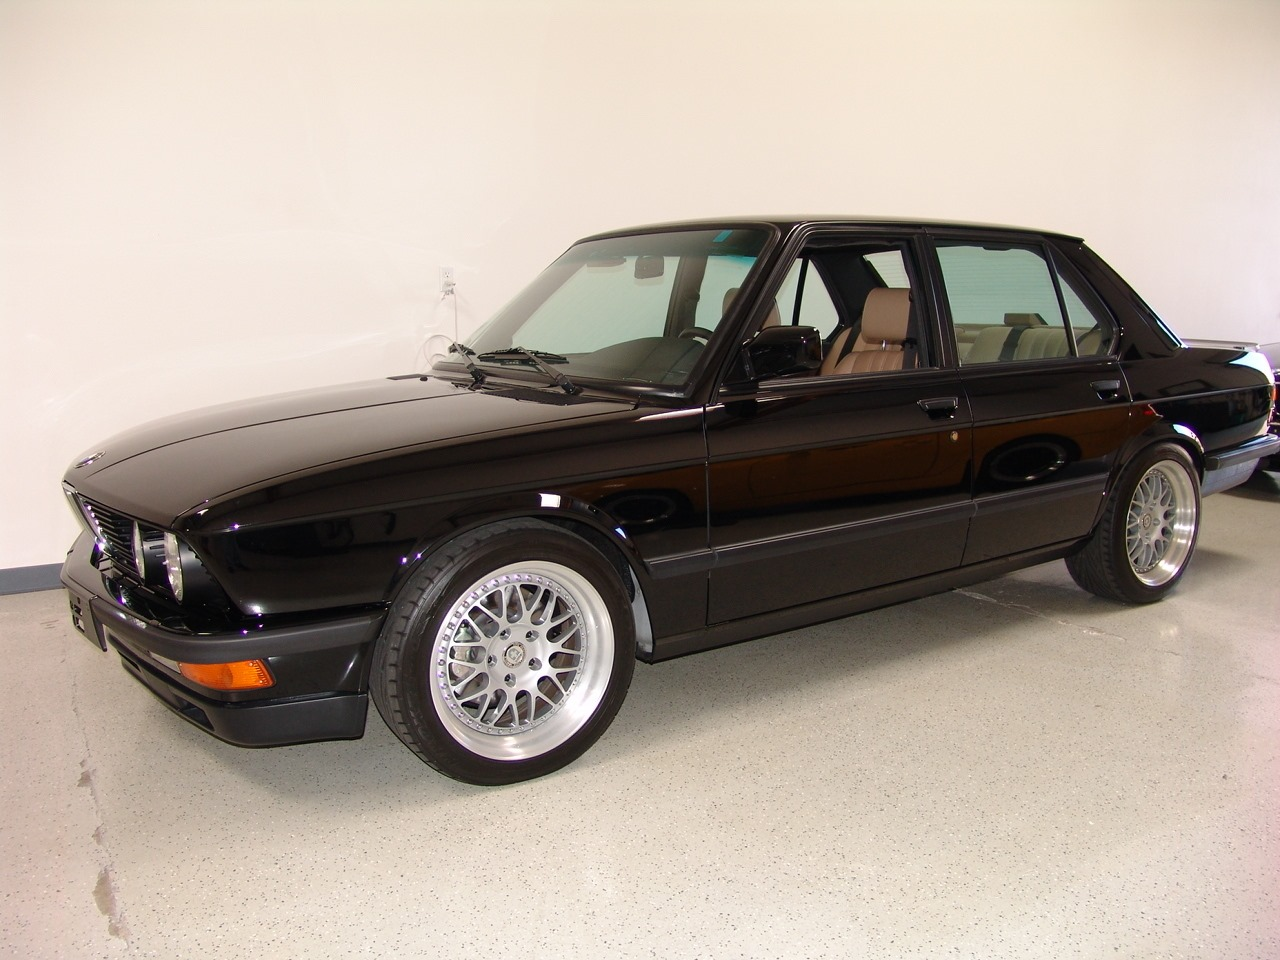 bmw m5 previously owned by frank gerber up for sale autoevolution. Black Bedroom Furniture Sets. Home Design Ideas